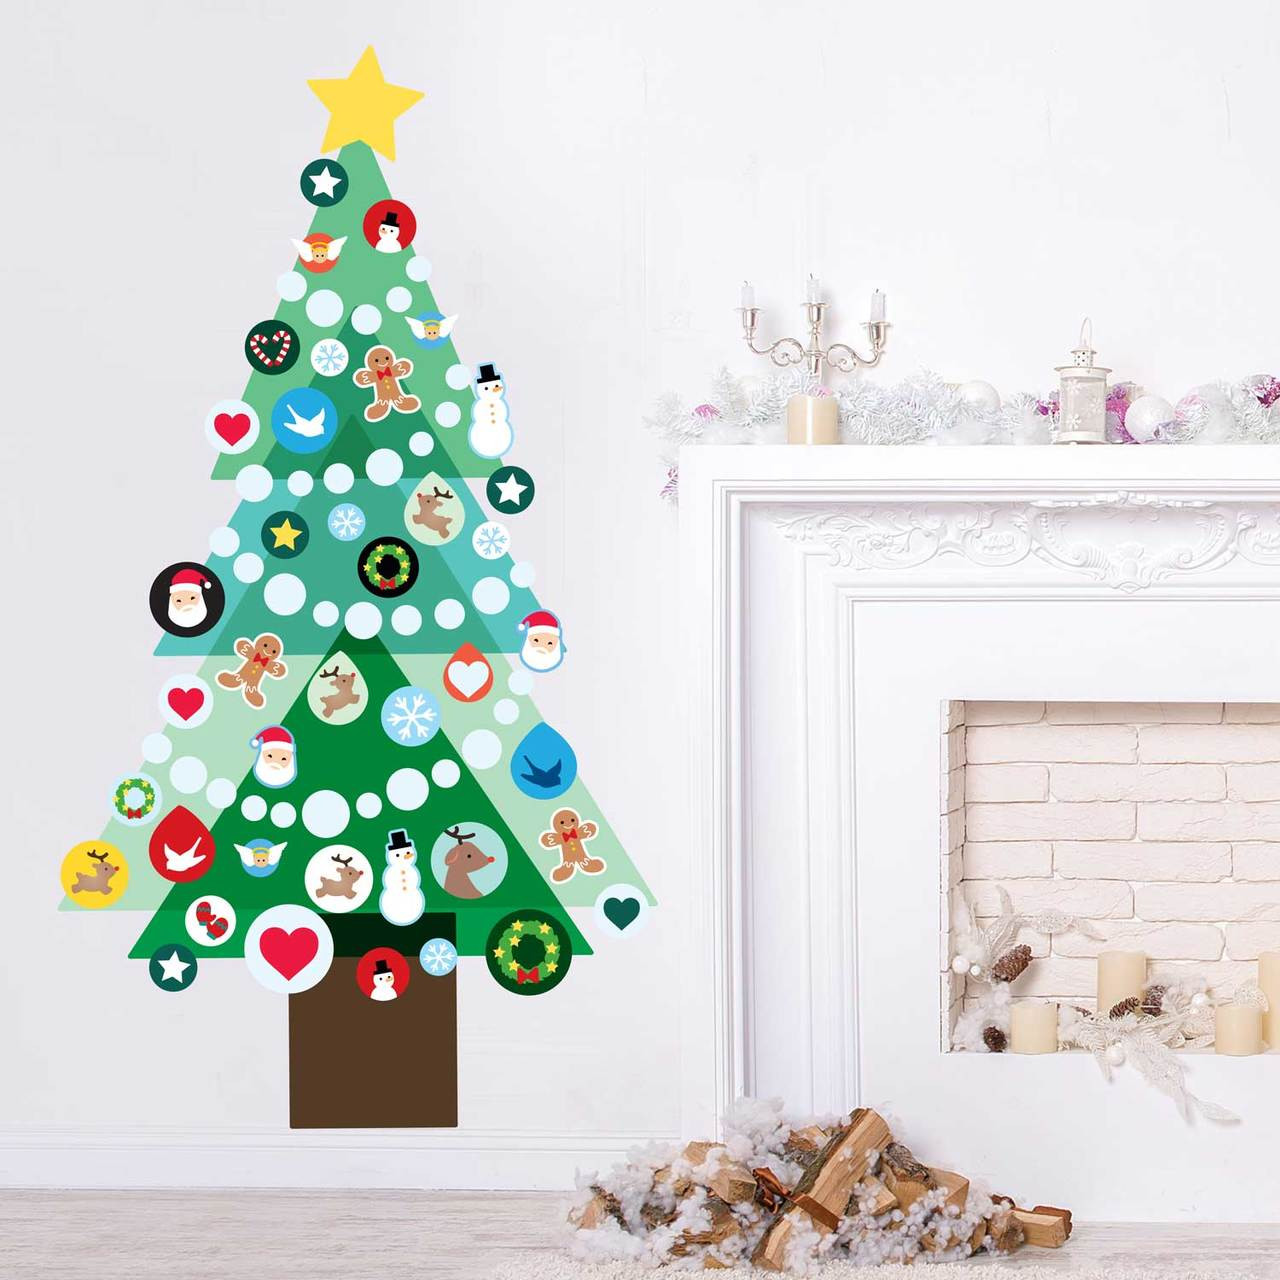 Decorate Your Own Christmas Tree Wall Decal Kit - Christmas Activity ...